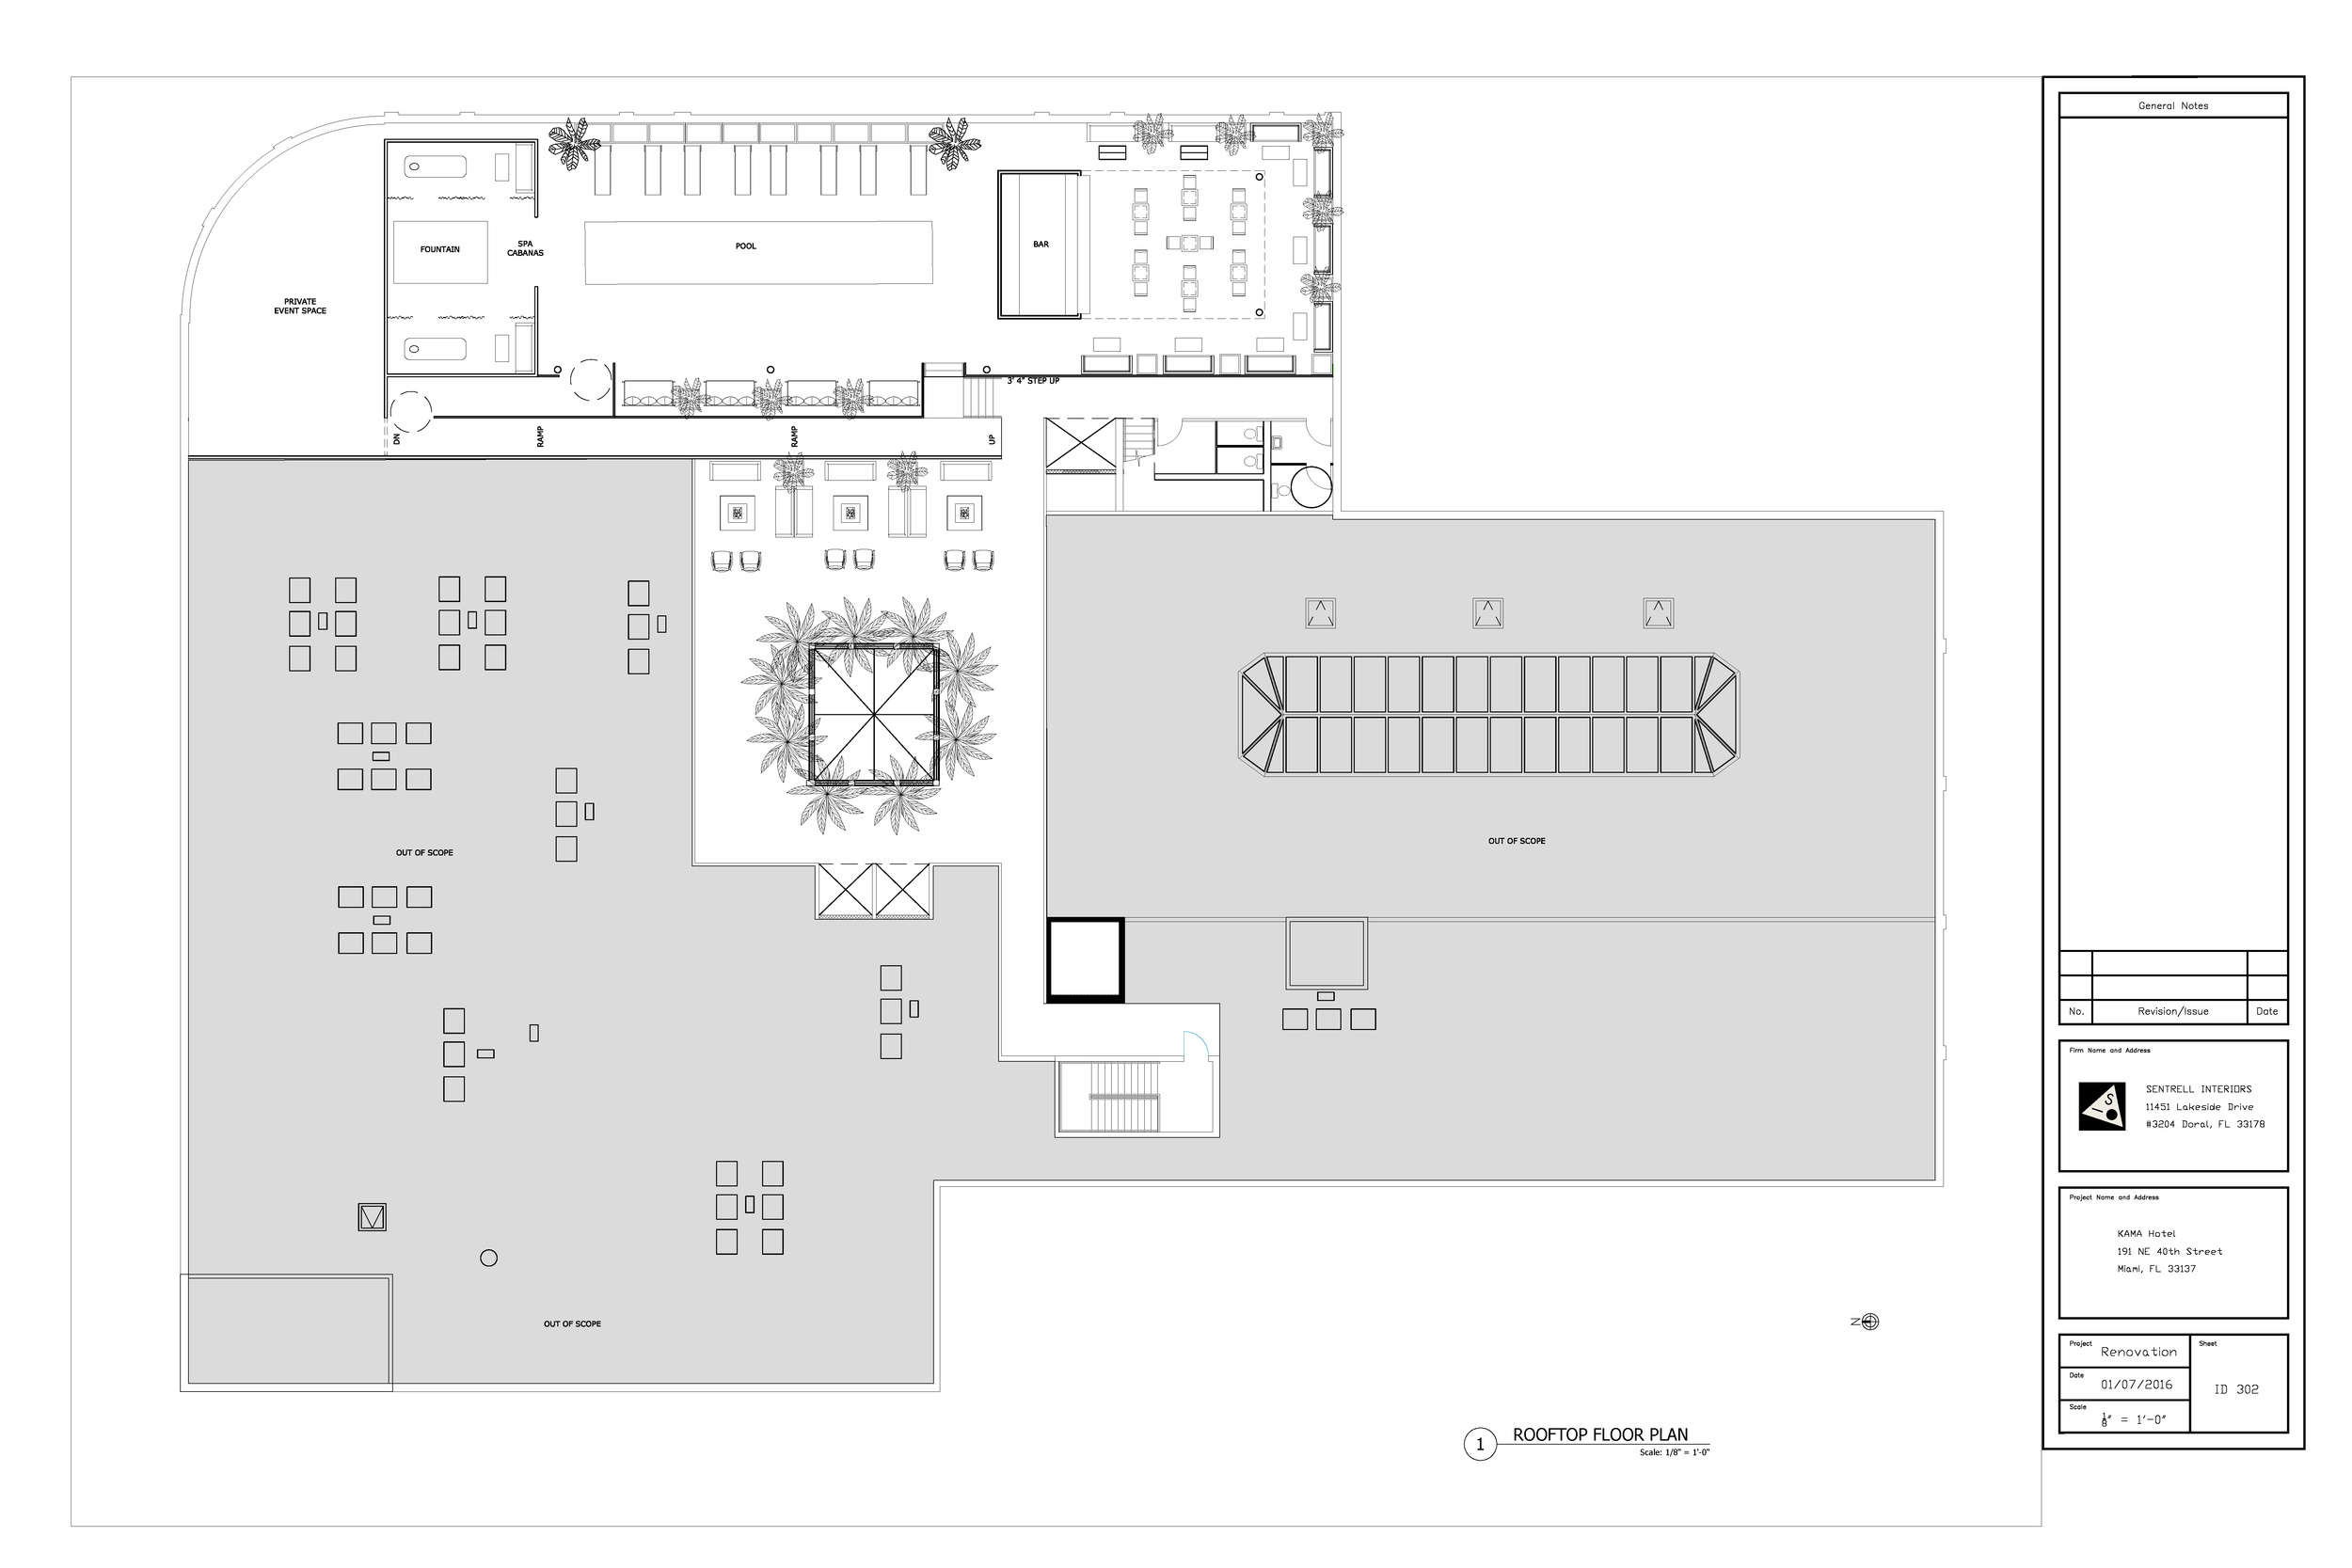 ID 302 Rooftop Floor Plan.png